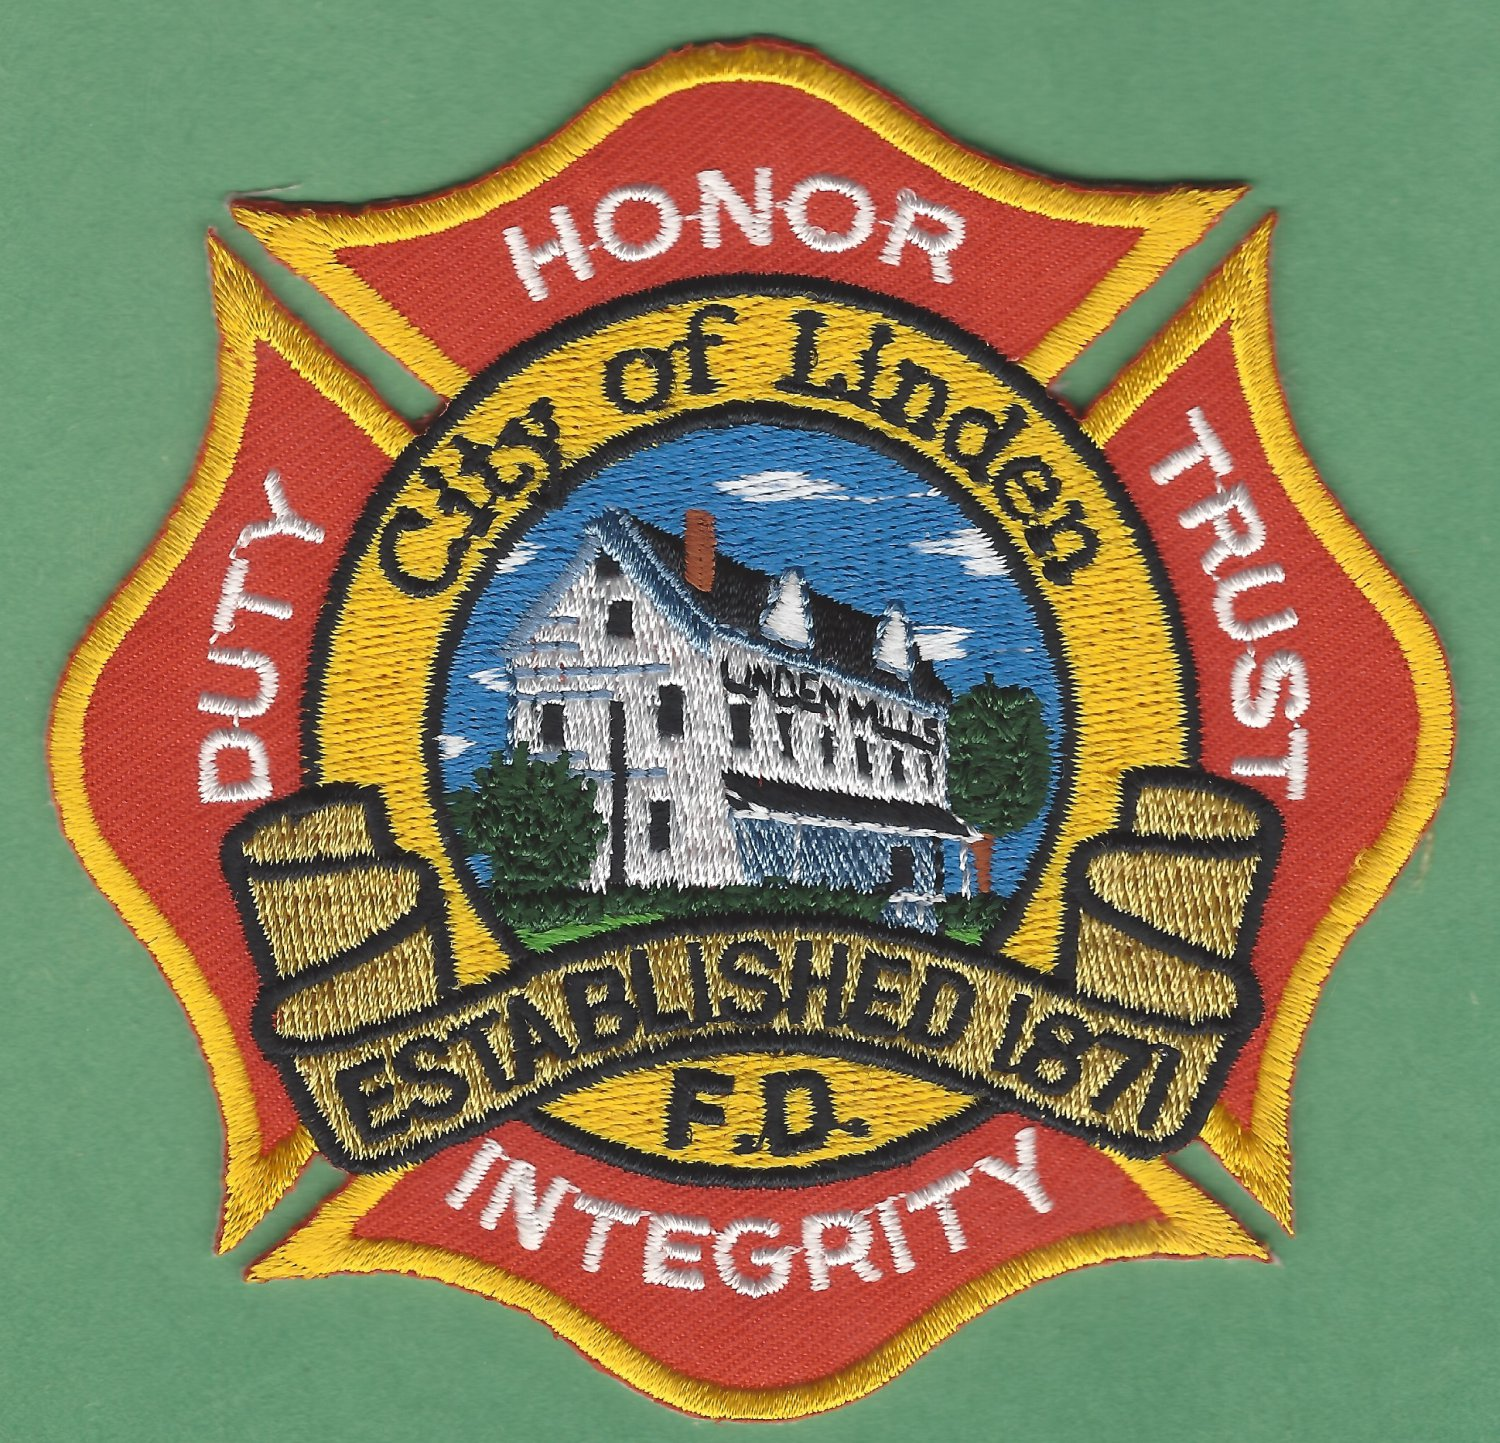 LINDEN MICHIGAN FIRE RESCUE PATCH